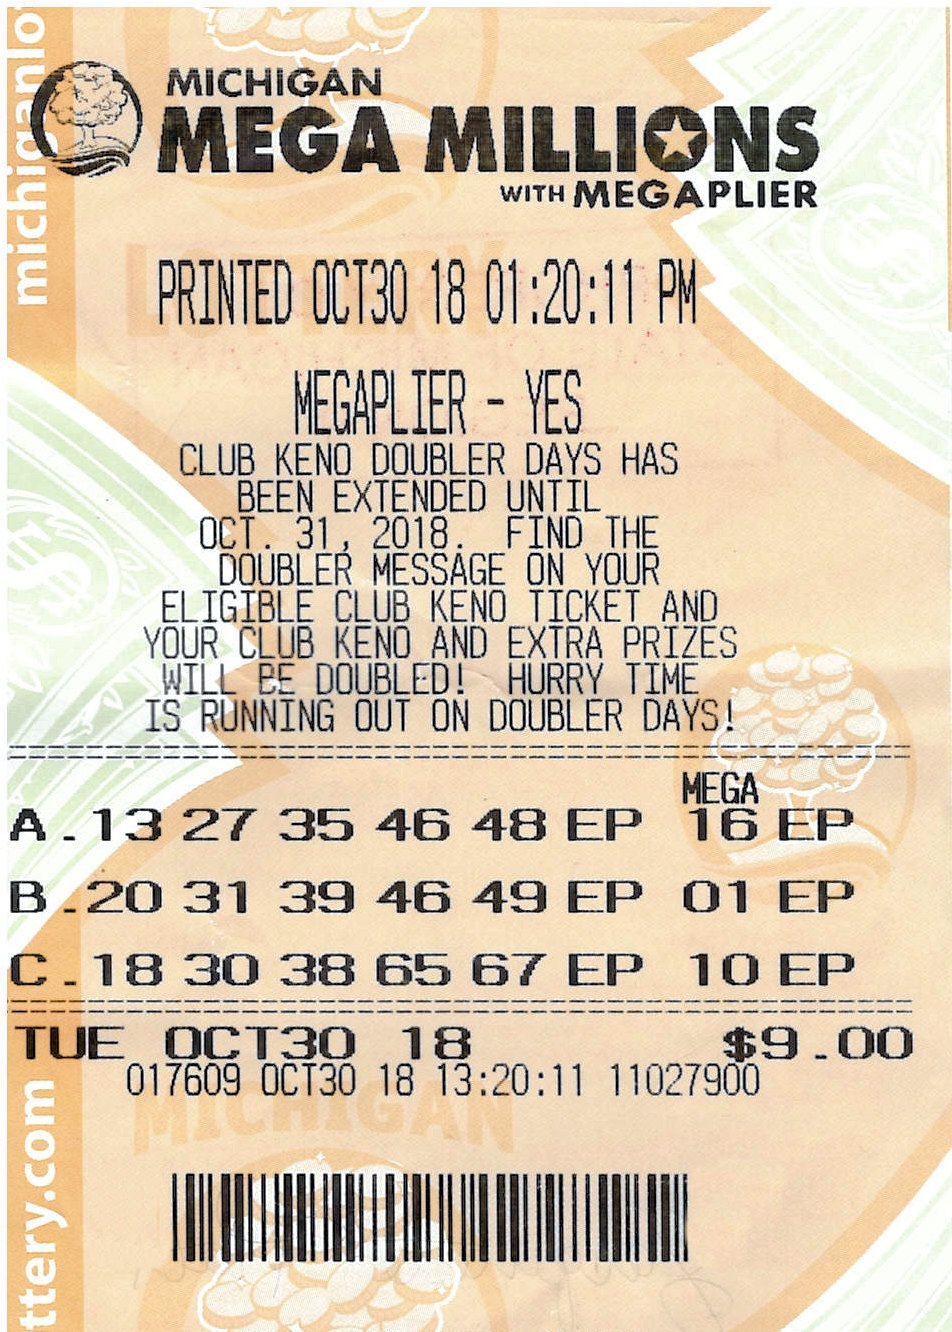 Mega millions drawing days tuesday and friday